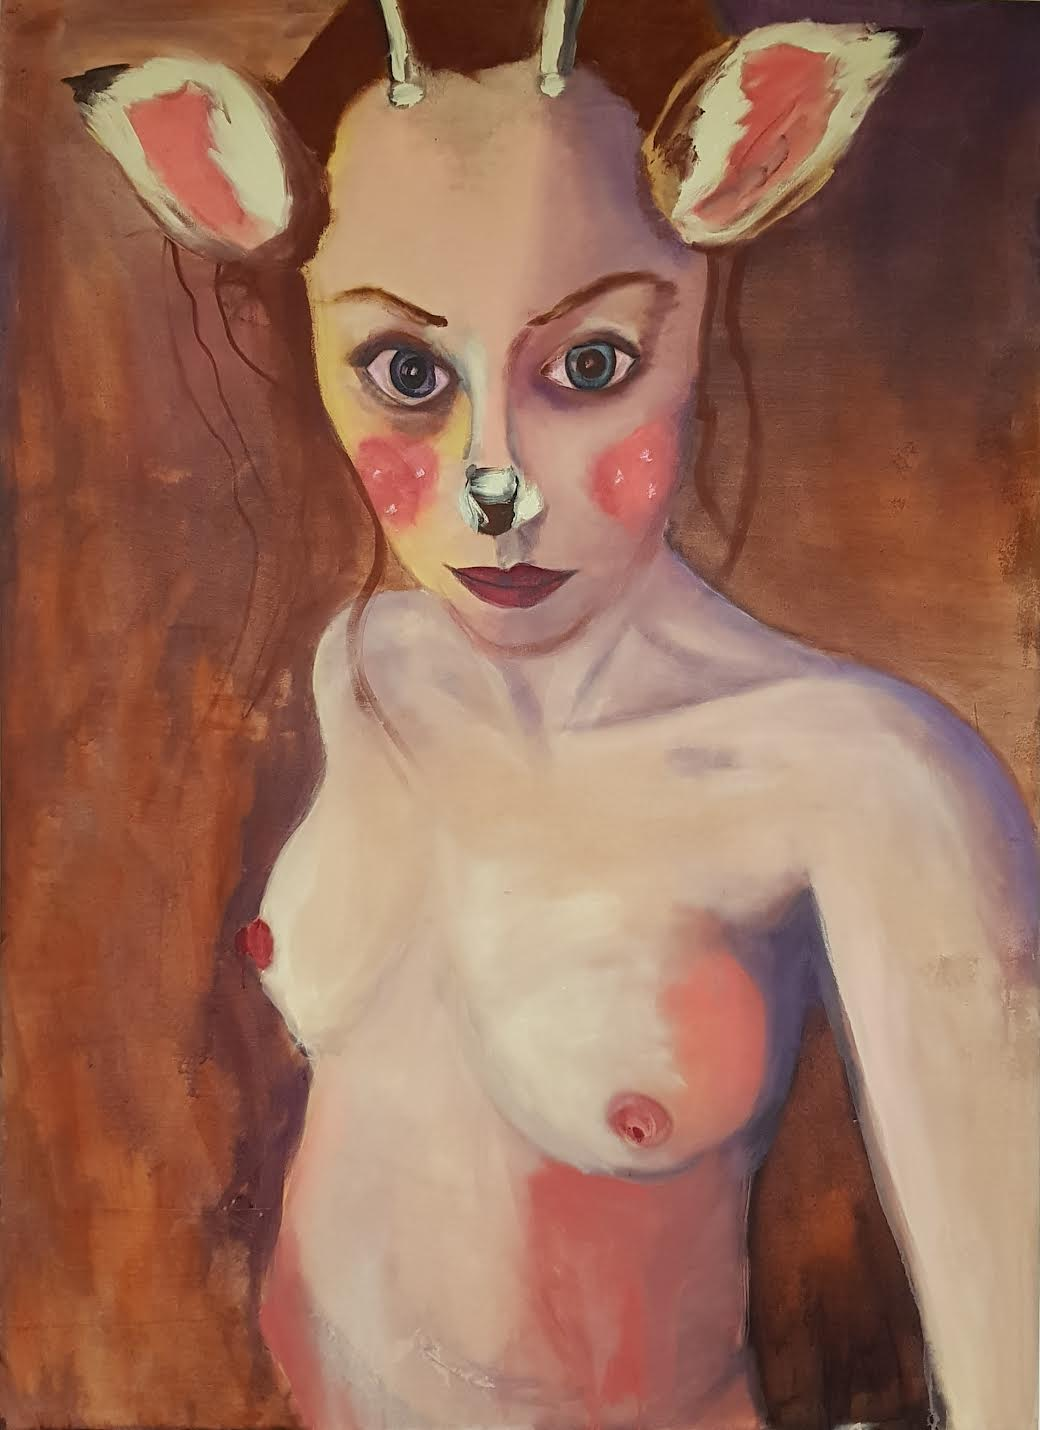 Rhiannon Salisbury, Selfie with Animated Fawn Mask, acrylic on cotton streched canvas, 160 x 120 x 2,  http://www.rhiannonrebecca.net